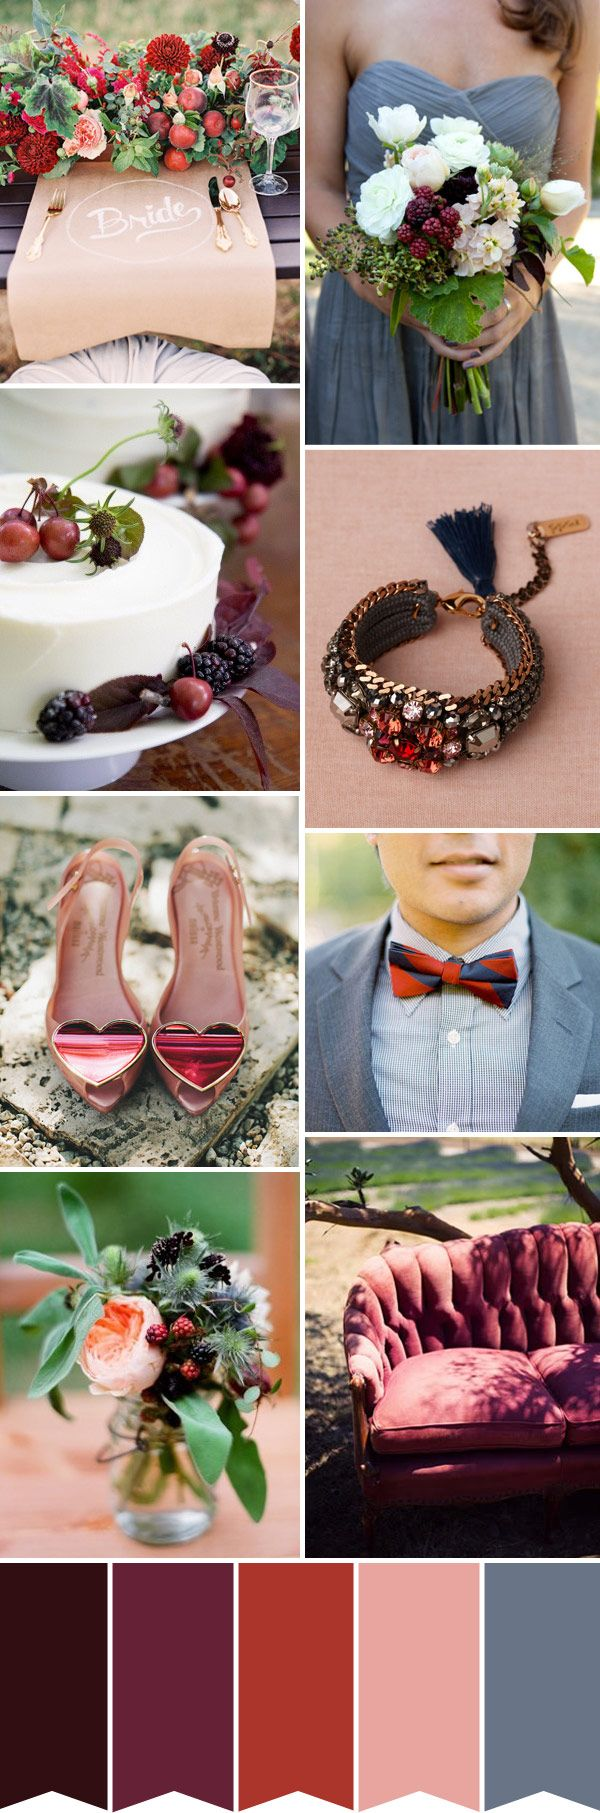 Berry Bright - Autumn Berries Colour Palette | One Fab Day